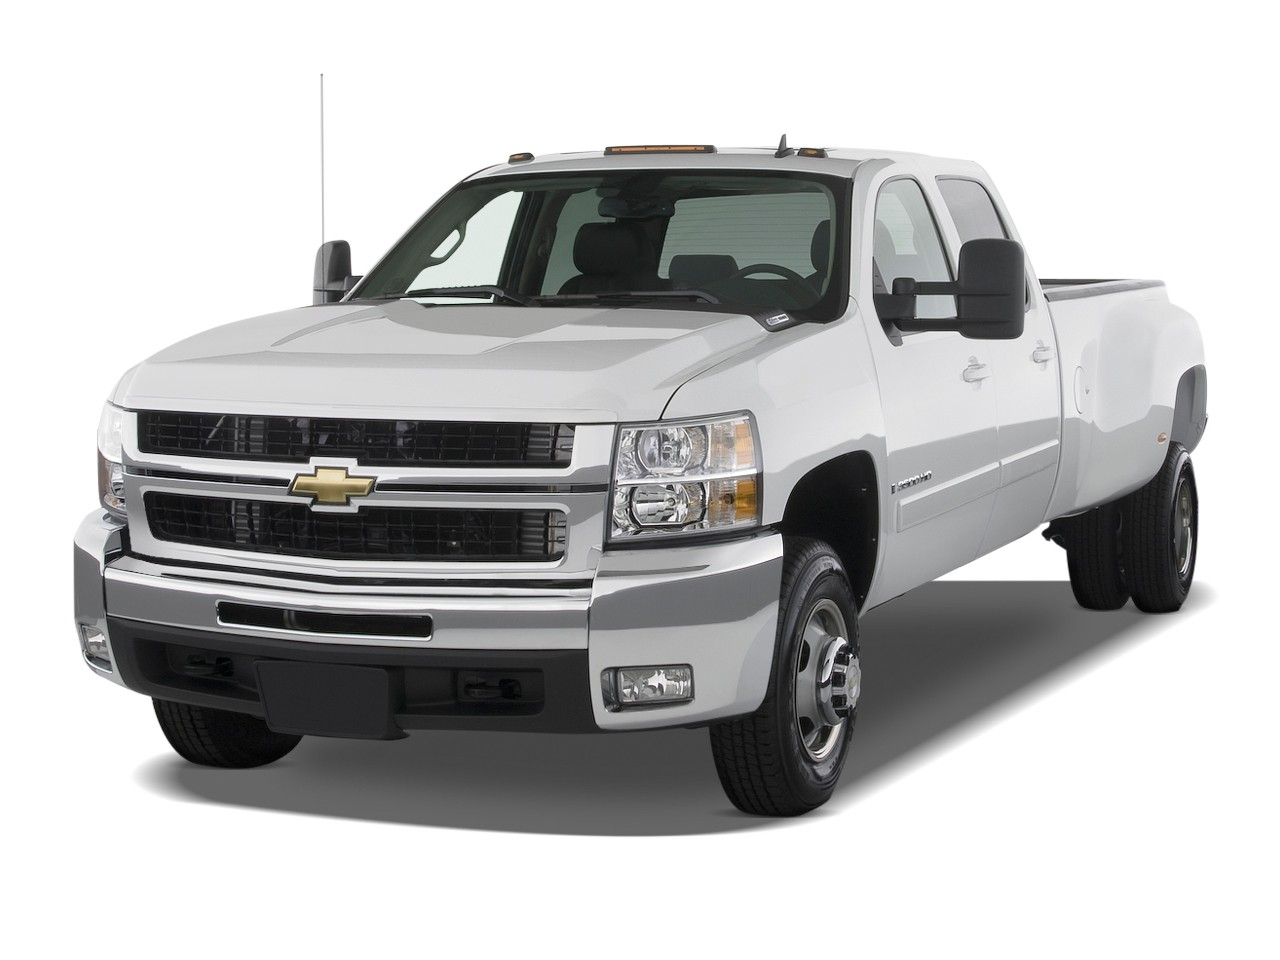 chevrolet silverado 3500hd crew cab specs photos 2008 2009 2010 2011 2012 2013. Black Bedroom Furniture Sets. Home Design Ideas